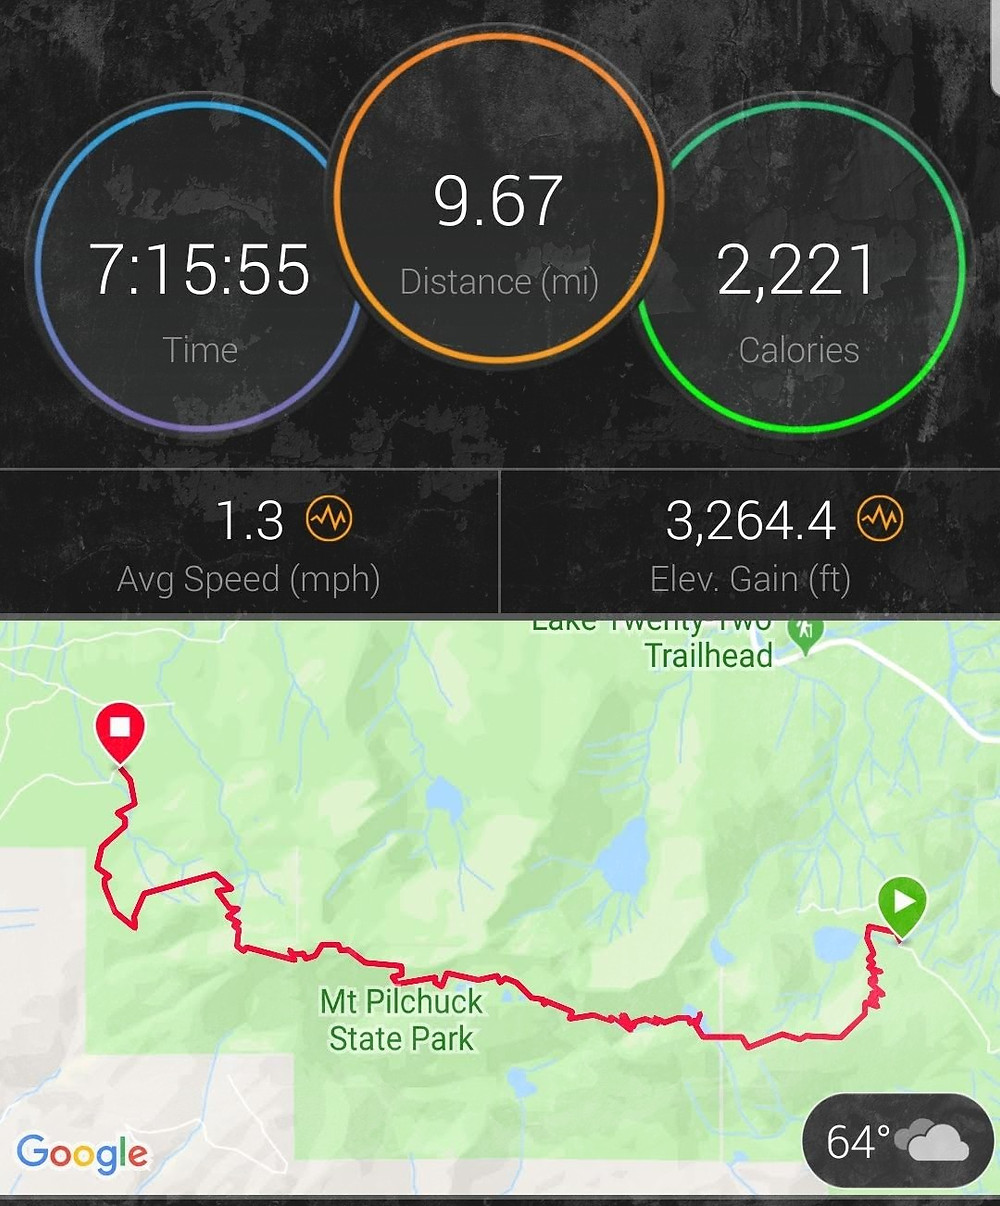 A hike with stats showing over 7 hours, 9 1/2 miles and 2,221 calories